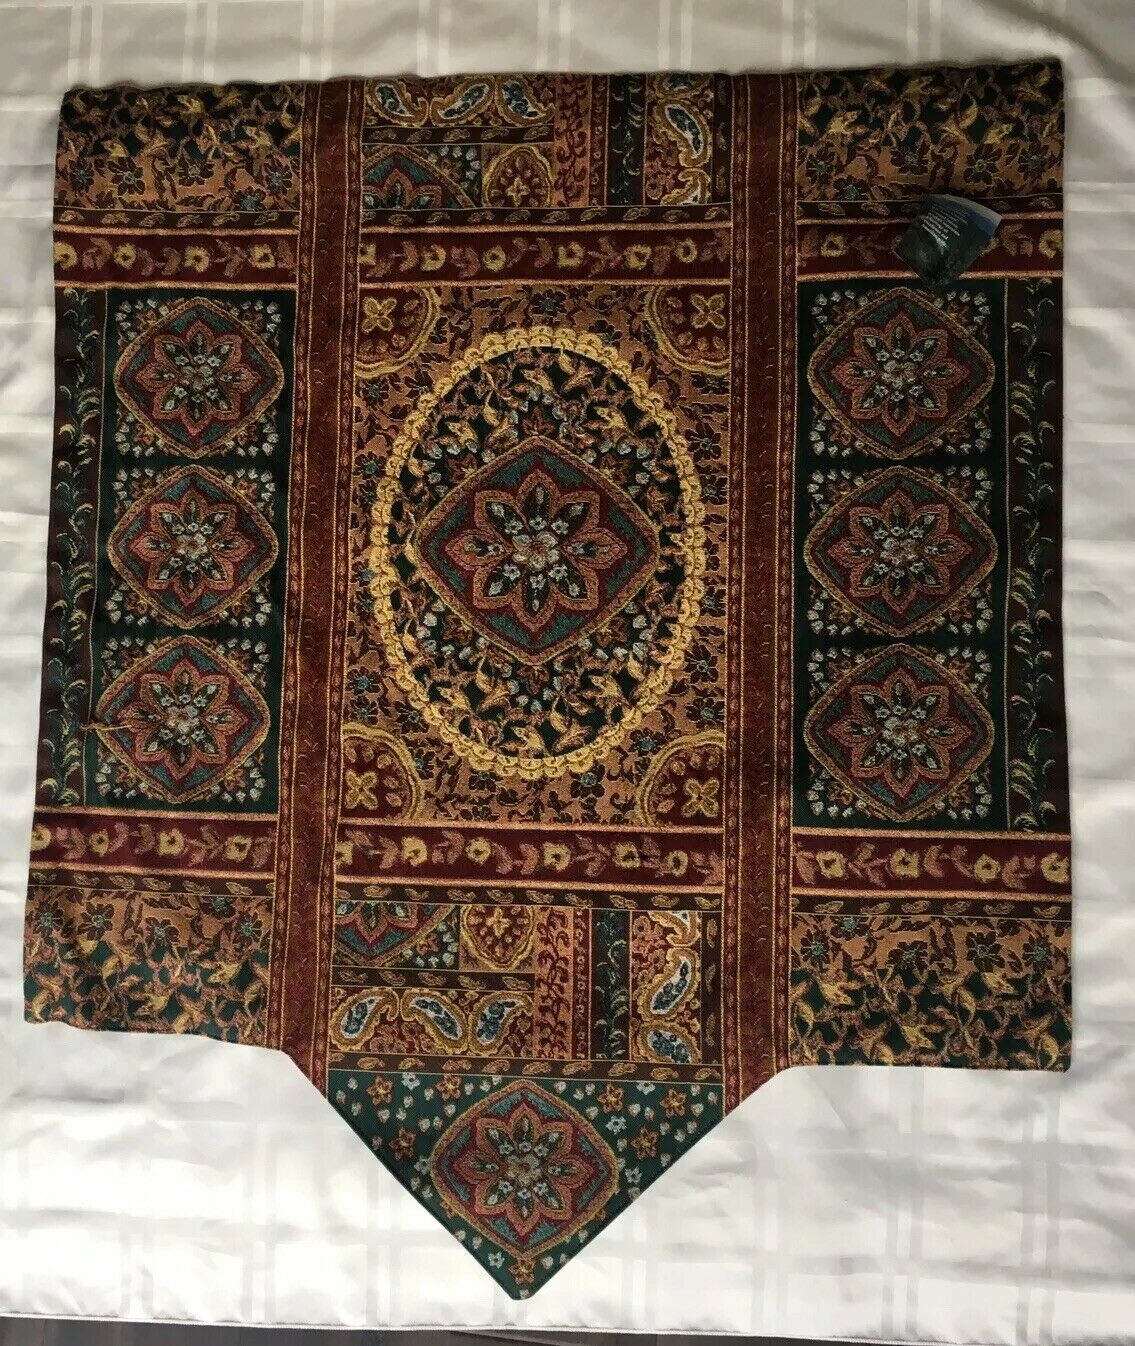 NWT Manual Woodworkers & Weavers Jacquard Woven Tapestry, Jewel Tones, USA Made